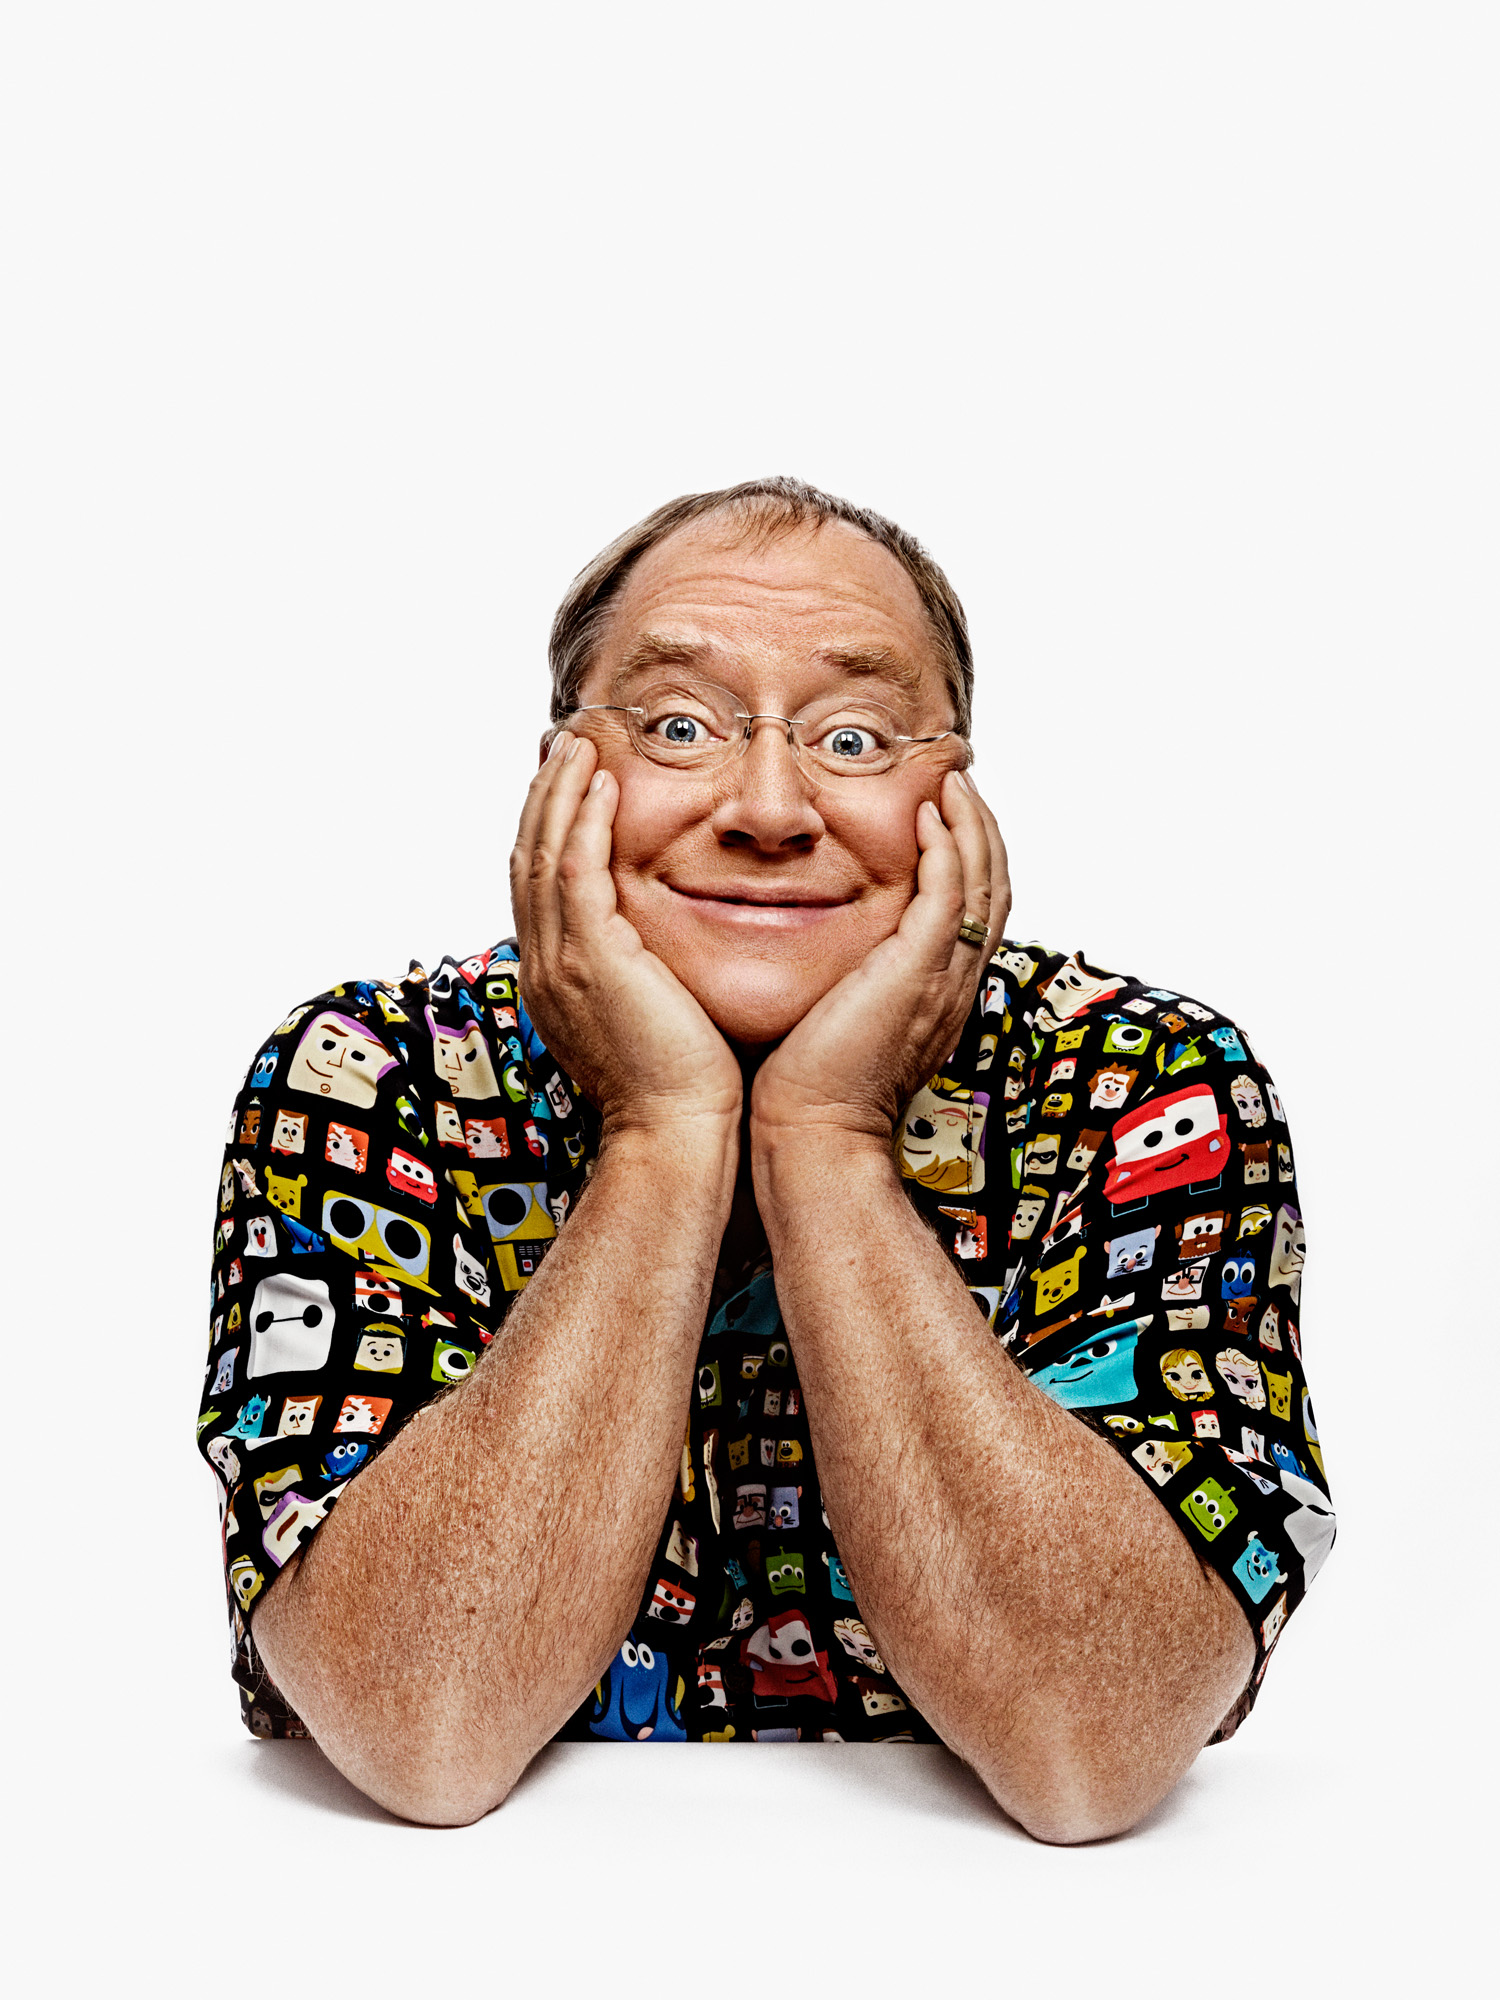 cc2015027 - Pixar Founder John Lasseter for Wired UK